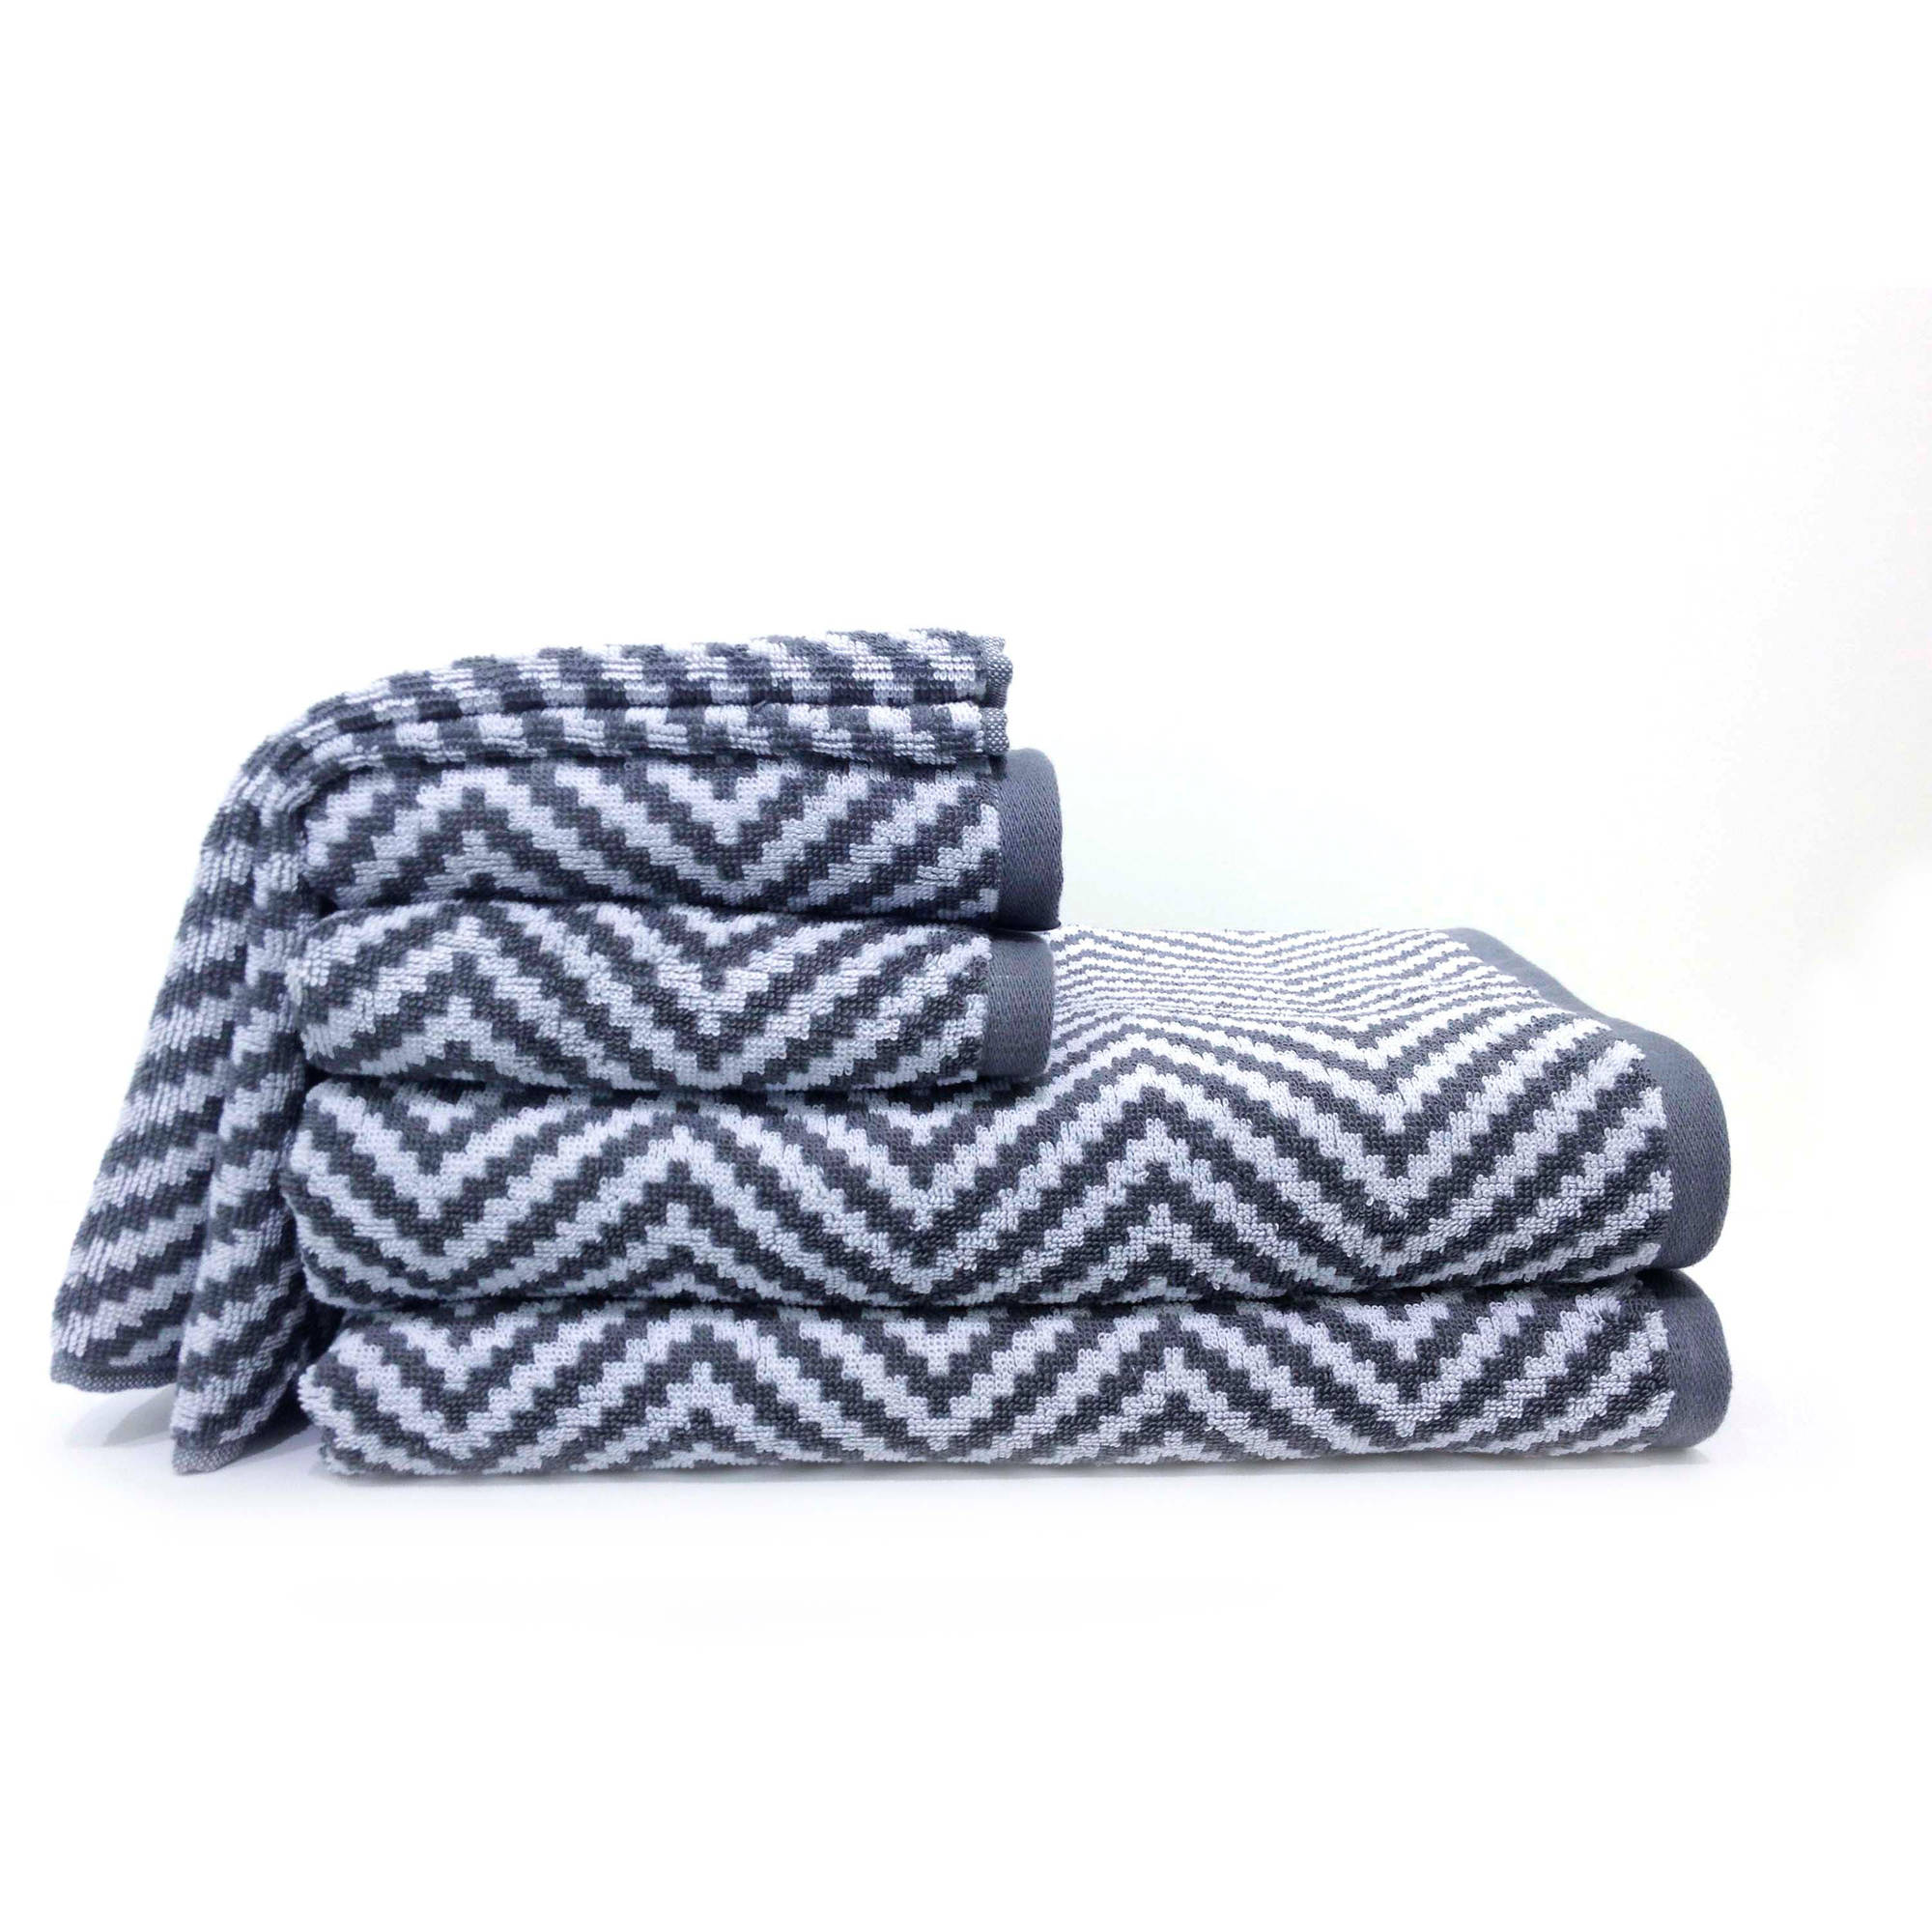 Better Homes and Gardens Chevron Bath Towel Collection